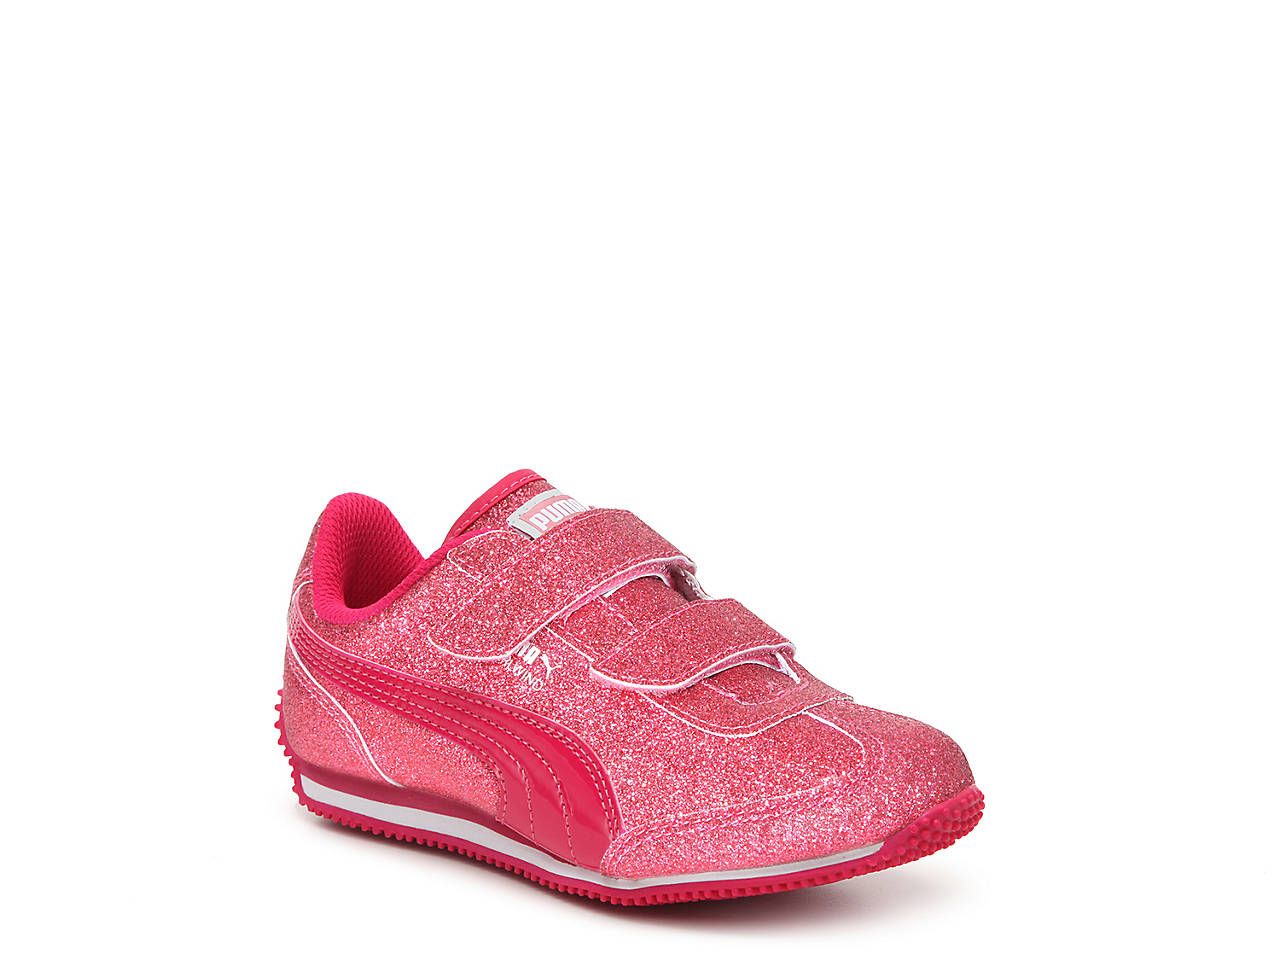 8db6af964f3d Puma Whirlwind Glitz Toddler   Youth Sneaker Kids Shoes